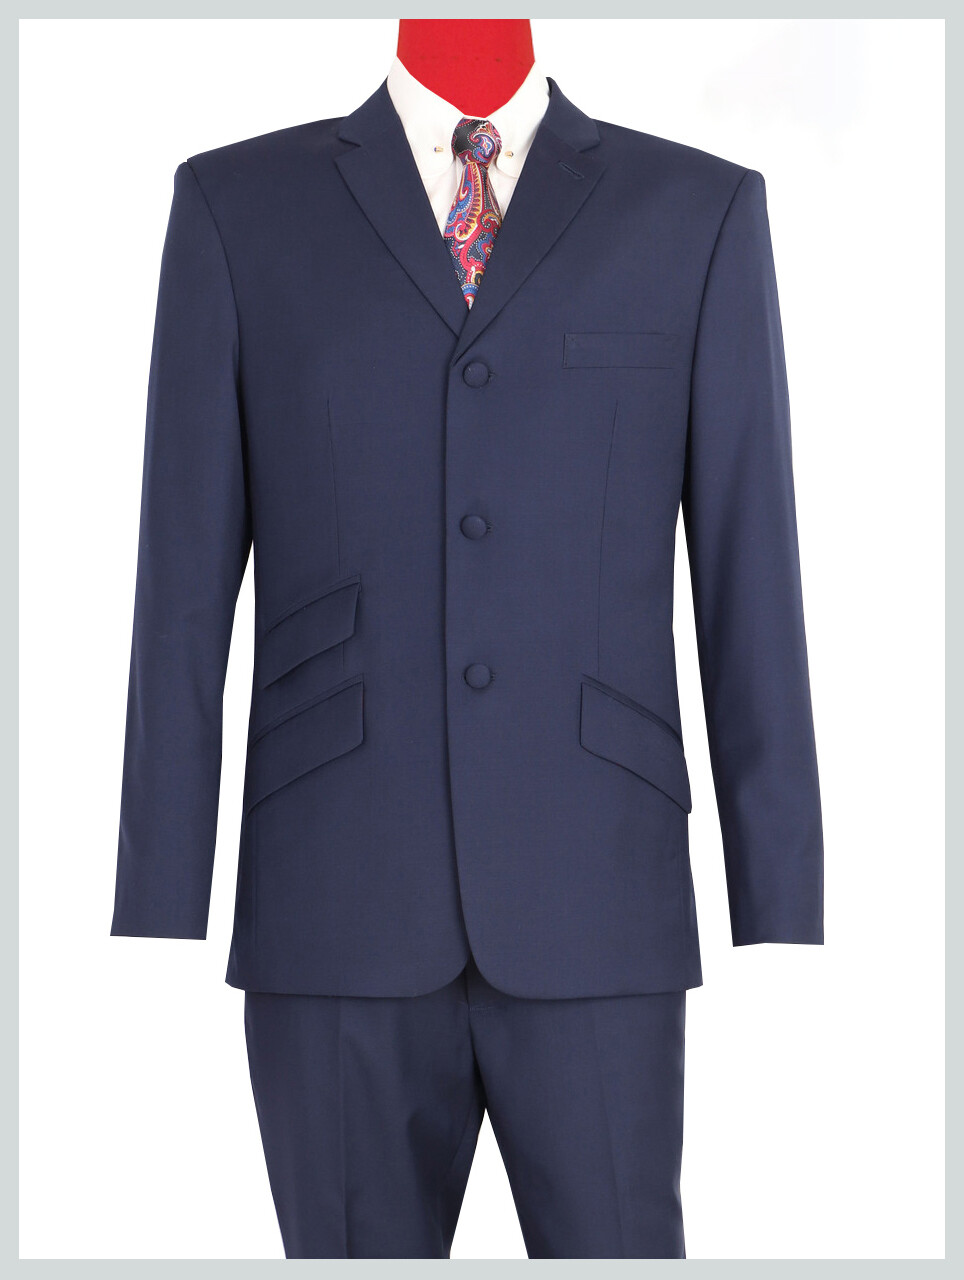 Navy Blue Mod Suit | 60s Covered Button Suit